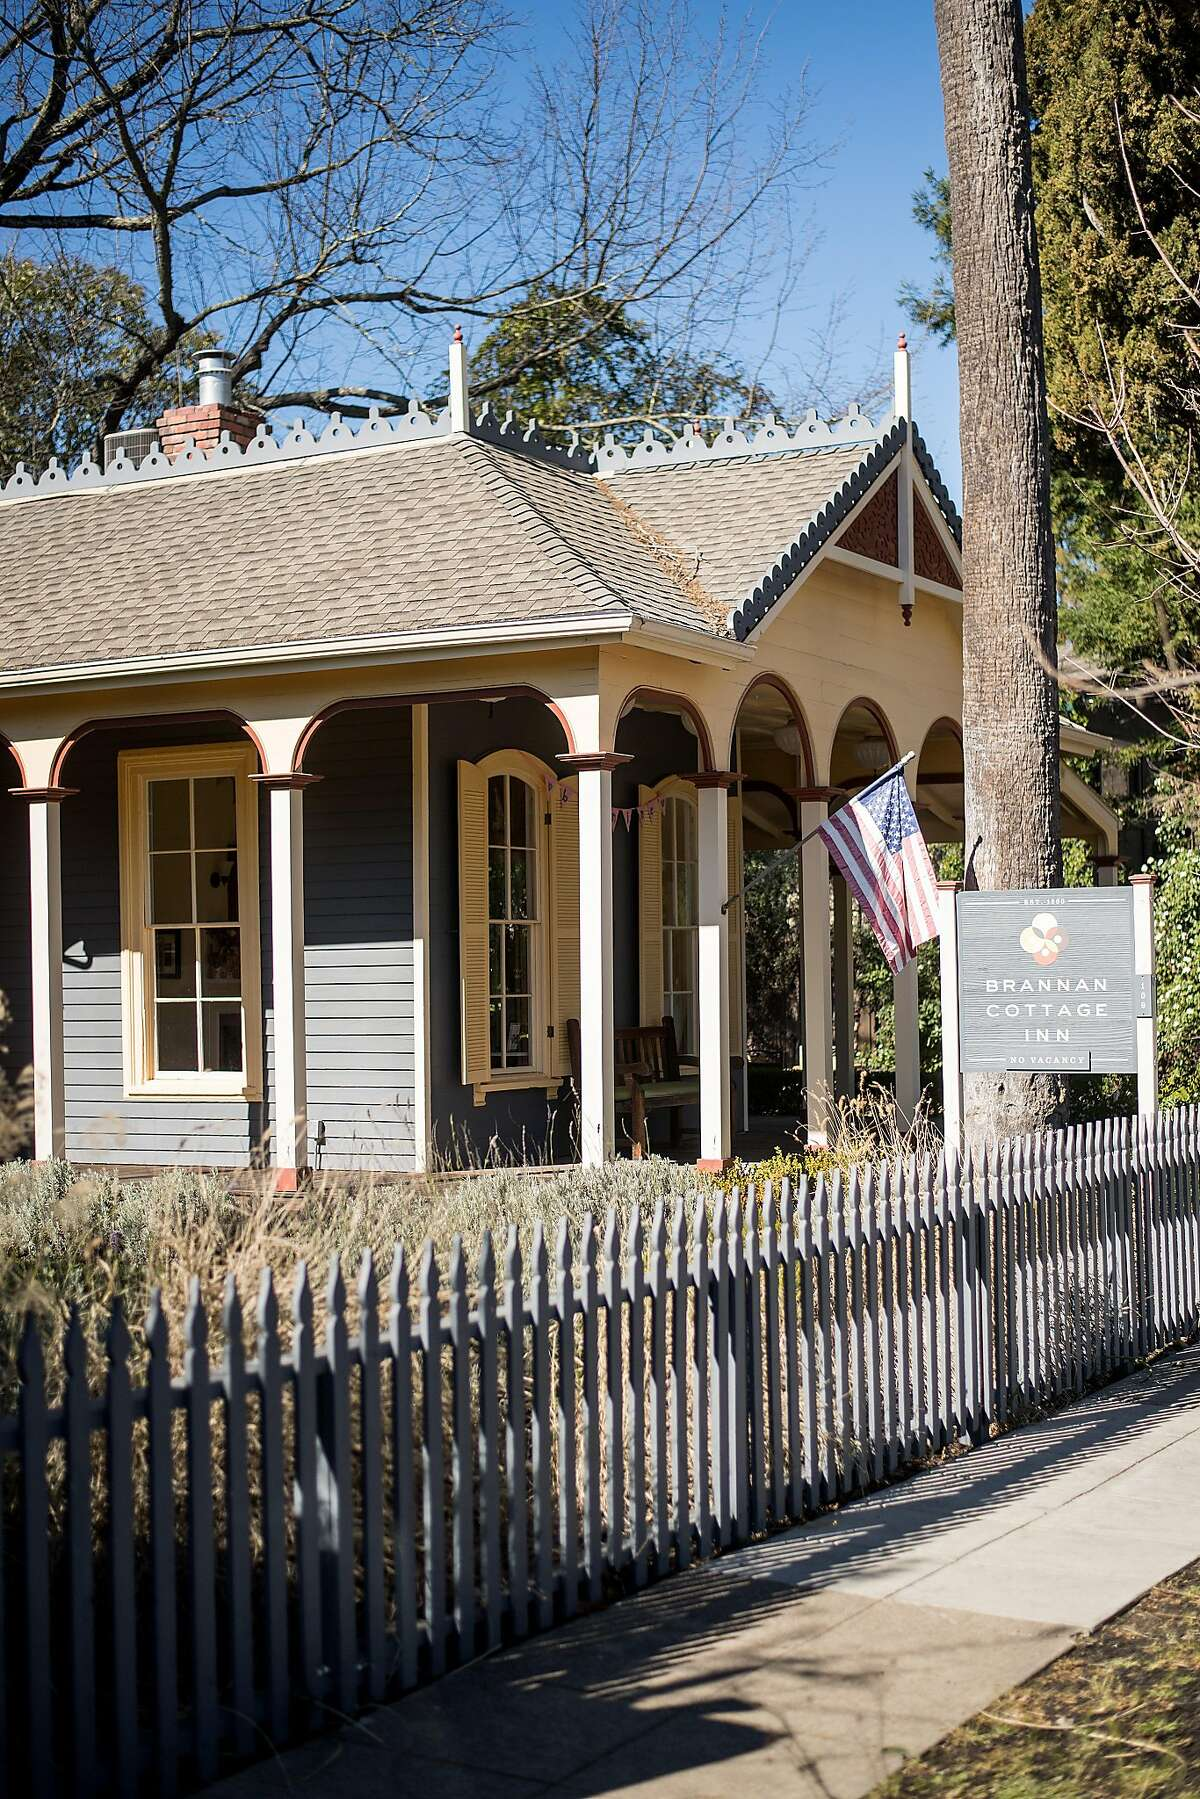 The Brannon Cottage Inn is pictured in Calistoga, Calif., on Saturday, Feb. 17, 2018.